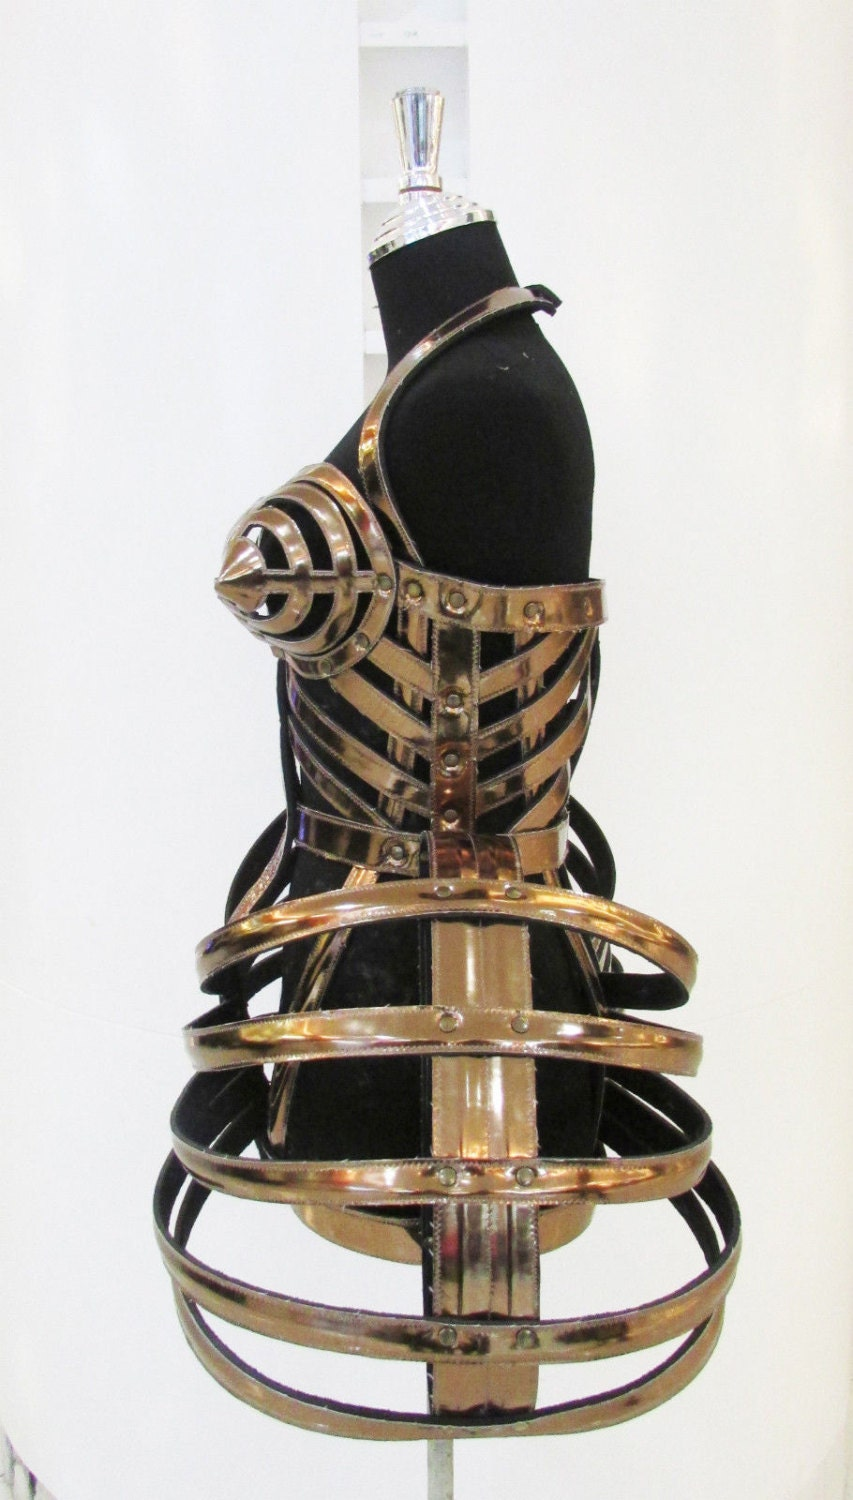 Madonna Cone Bra Pointy Corset Cage Leather Costume By Daneena